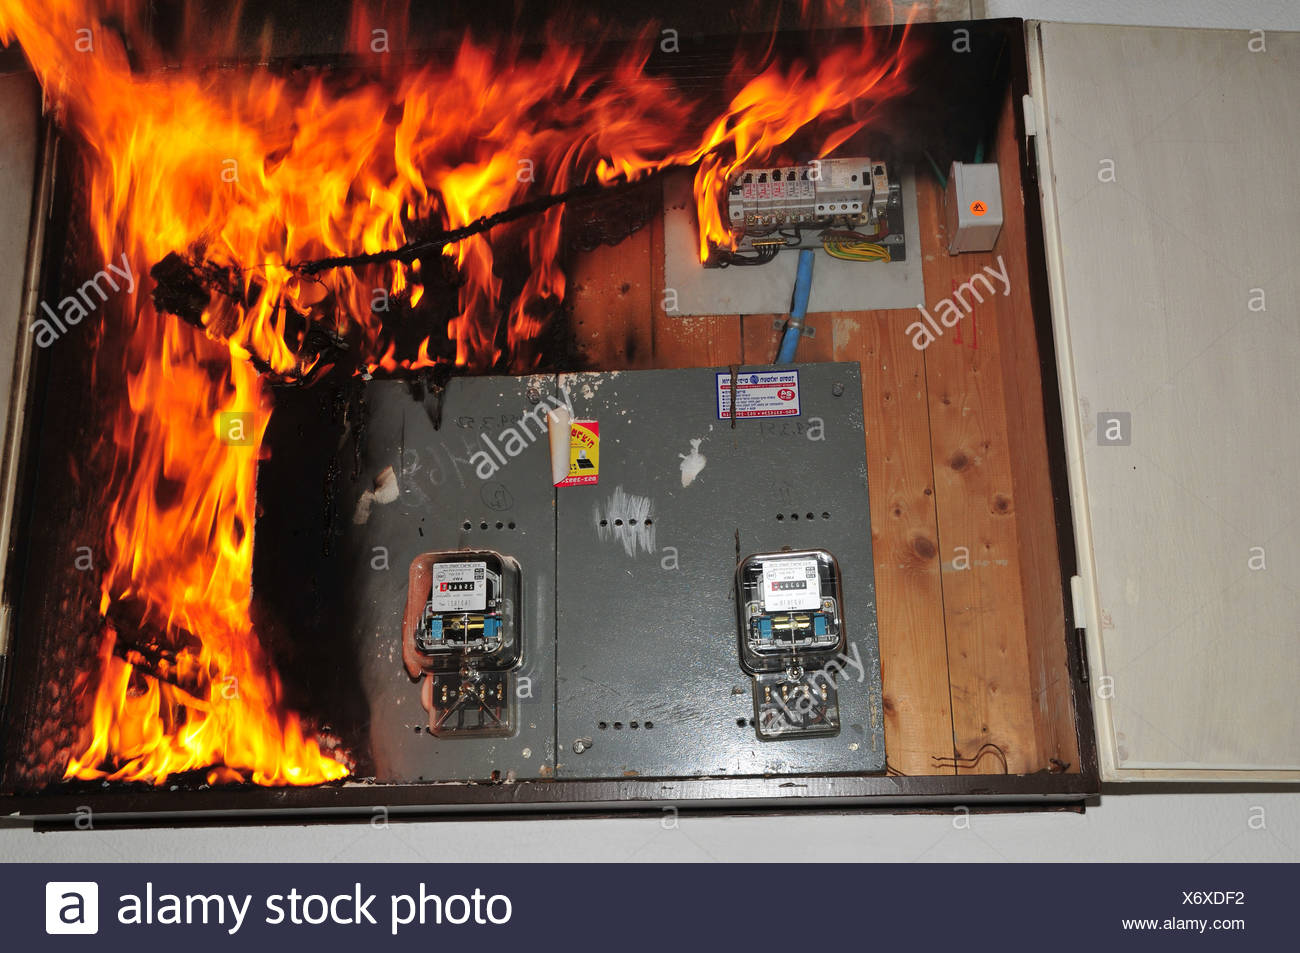 a fire broke out in a household electrical fuse box flames consumed rh alamy com firewall fuse box fire extinguisher for fuse box